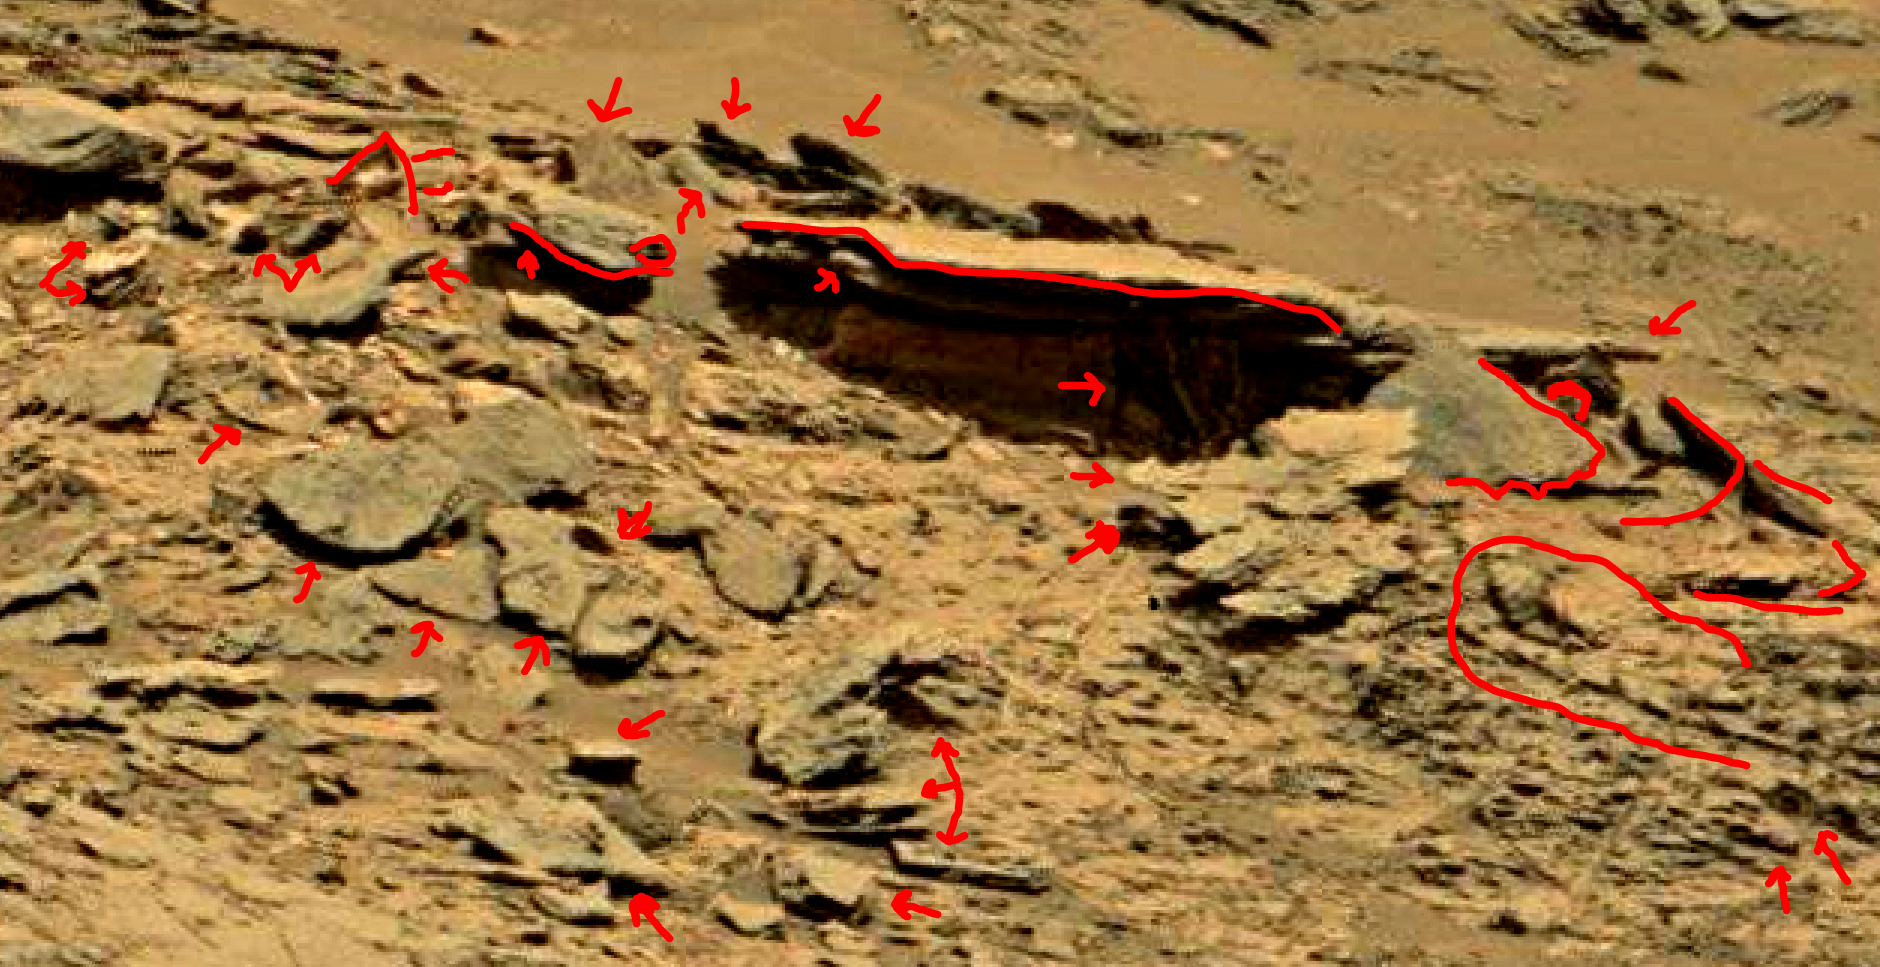 mars sol 1353 anomaly-artifacts 71a was life on mars